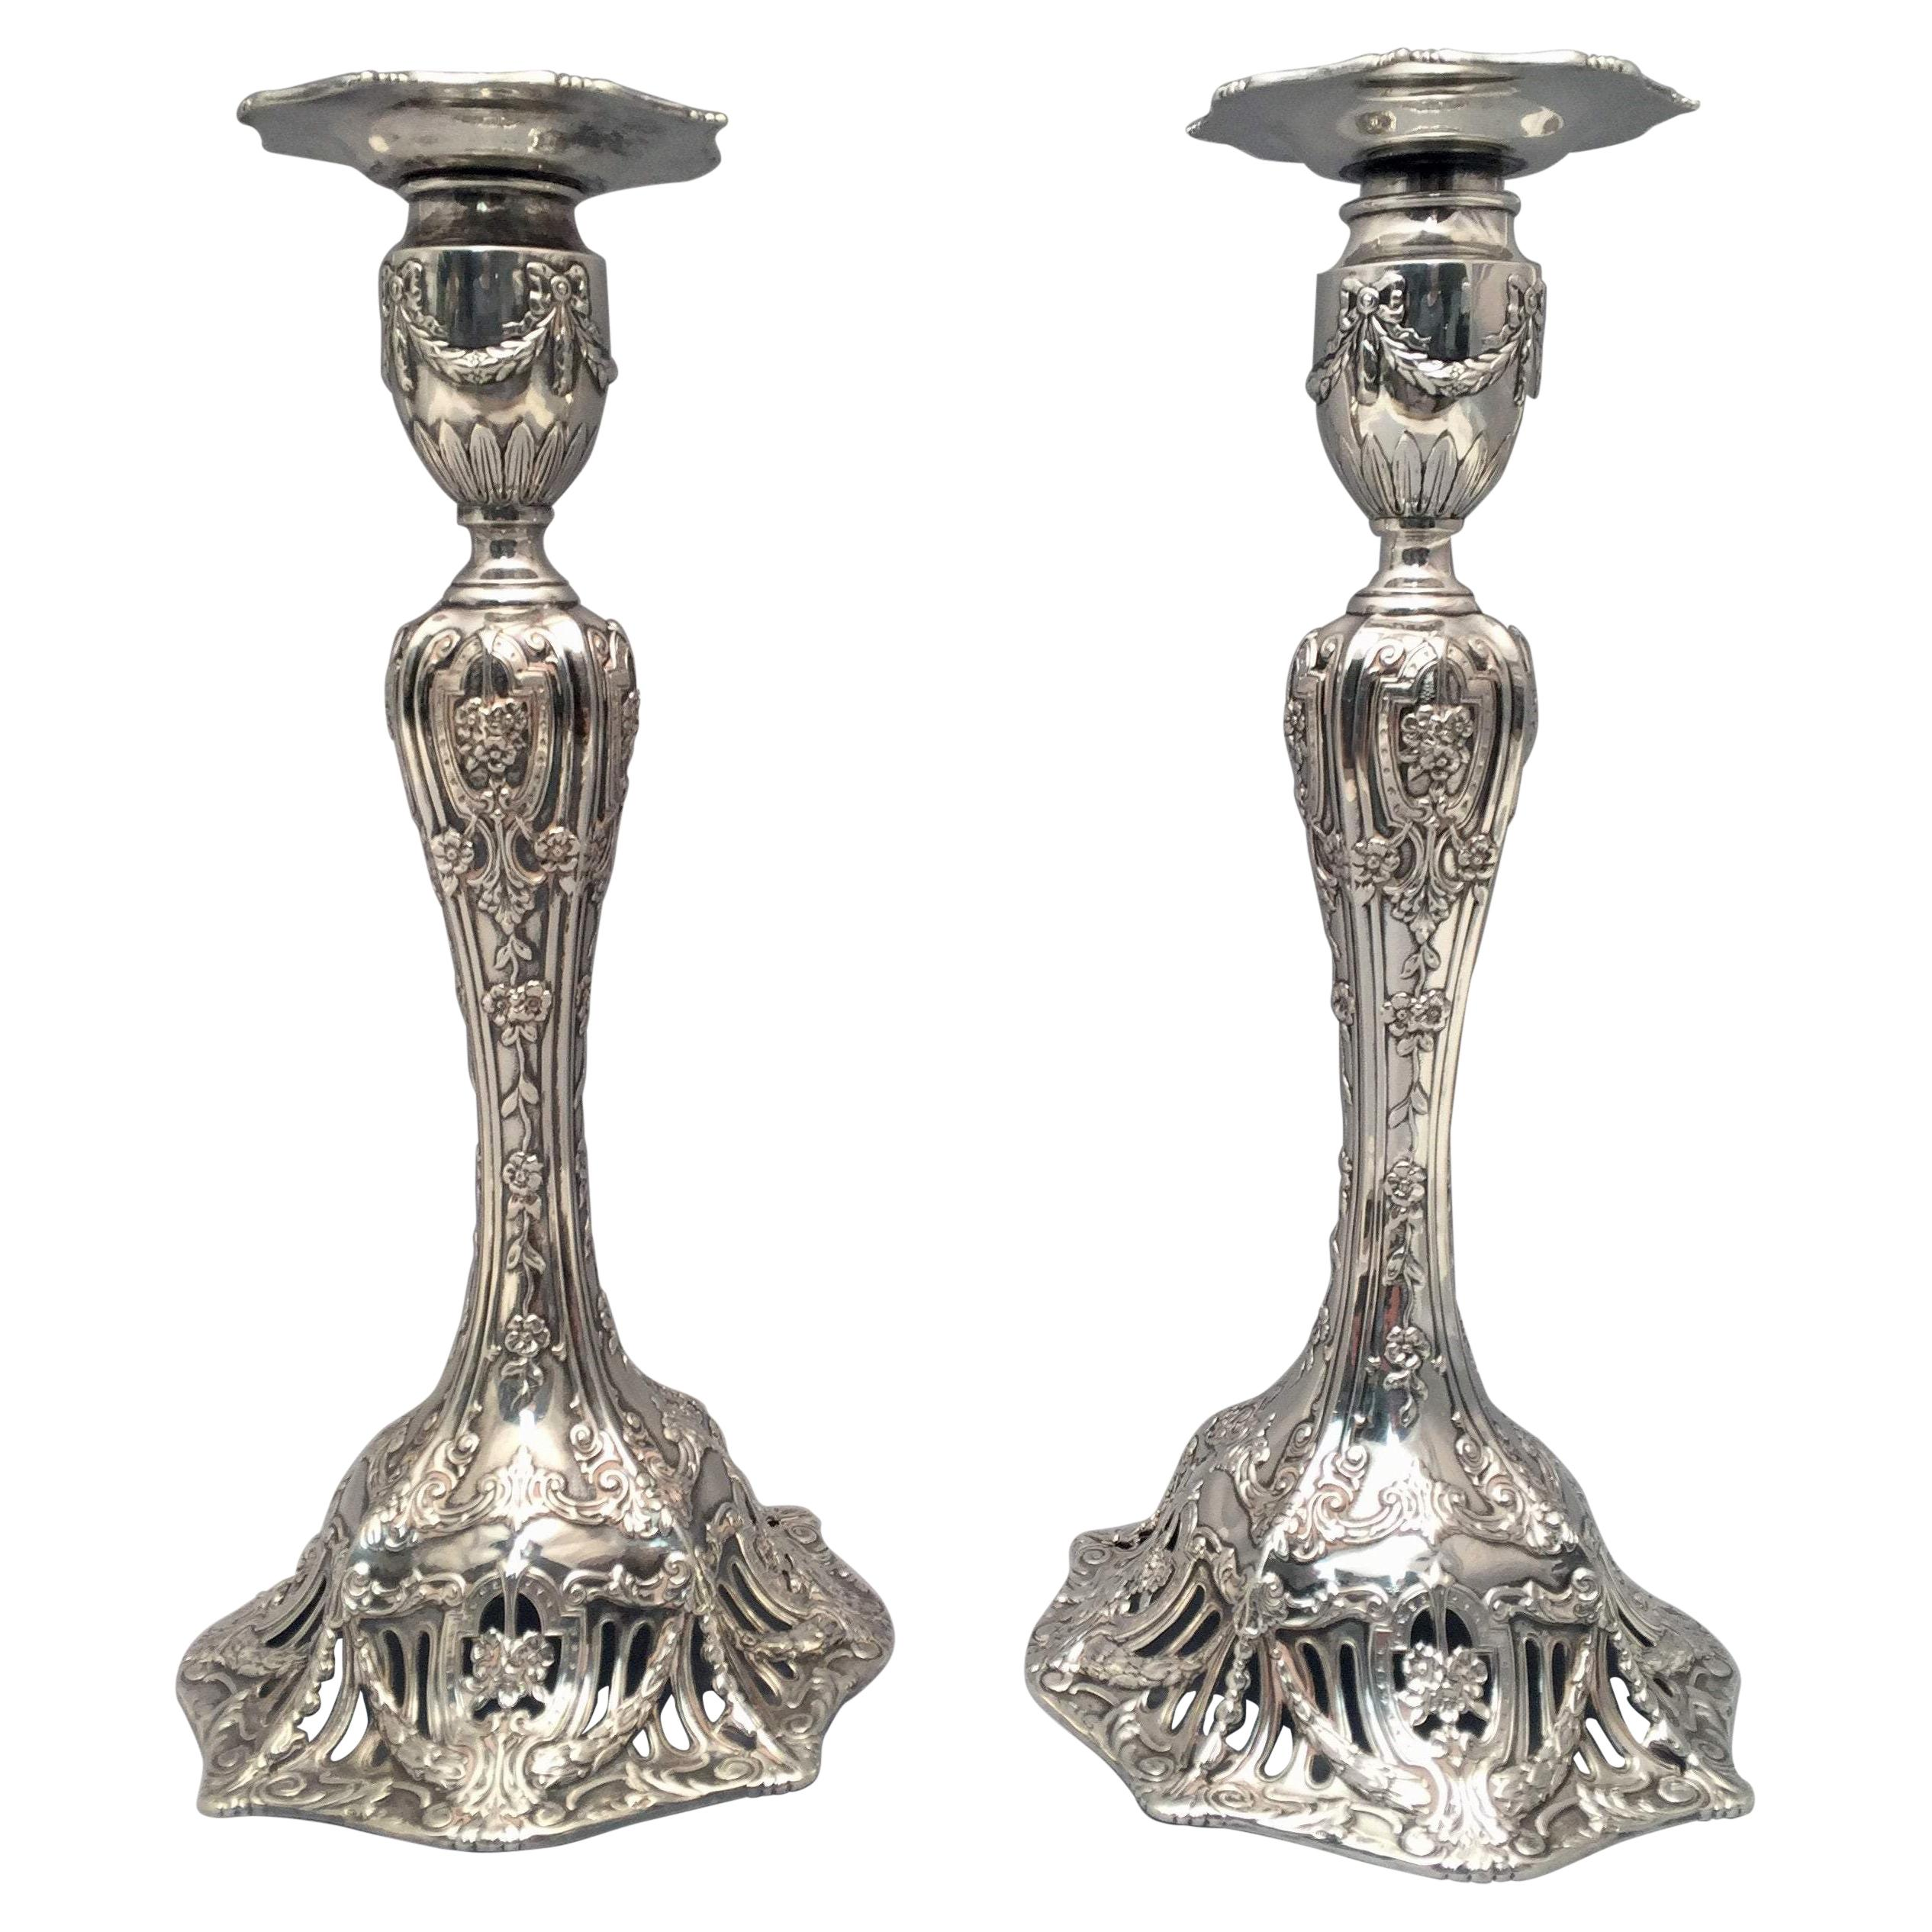 Theodore B. Starr Candle Holders